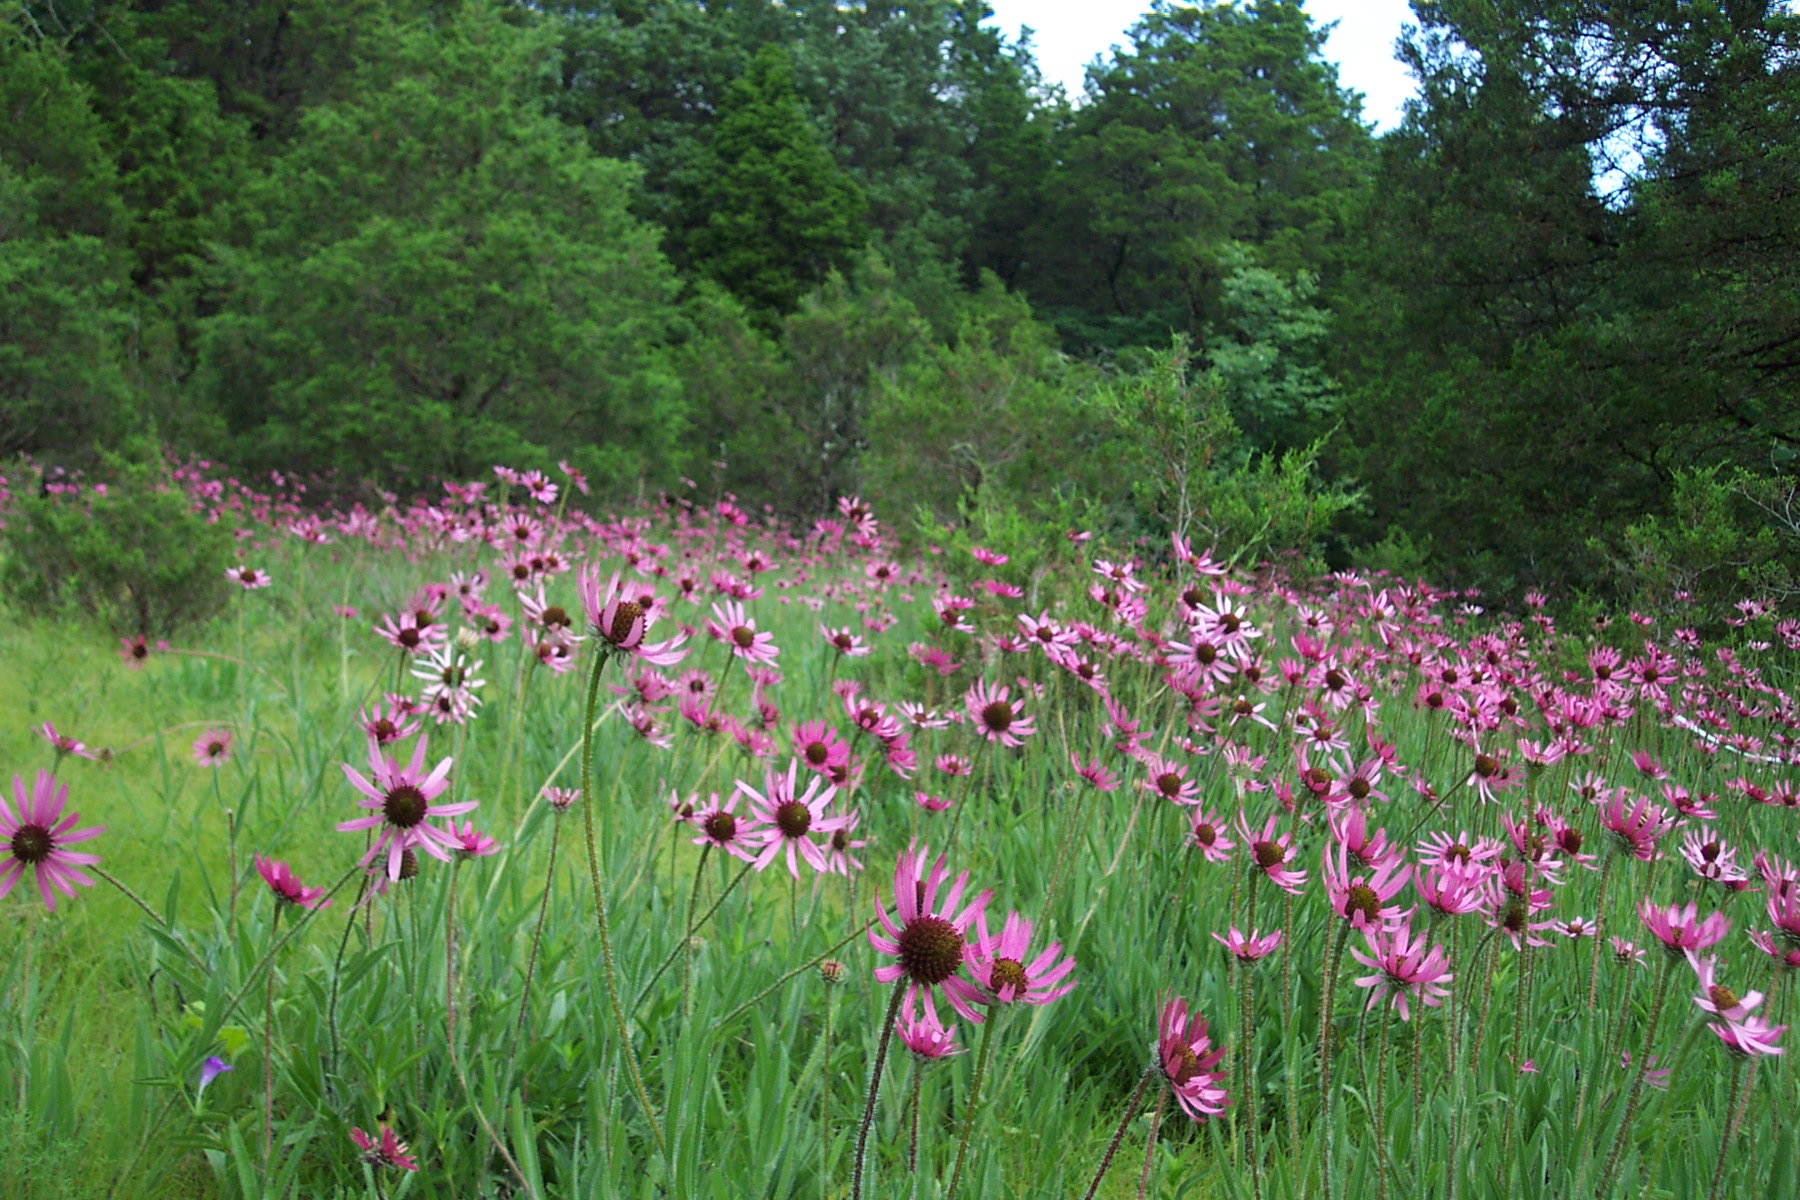 Tennessee Coneflower (Echinacea tennesseensis), like most other species of coneflowers, prefers deeper soils than most of the open glades afford. The presence of this narrowly endemic species in the Nashville Basin suggests a long history of the presence of open savannas.